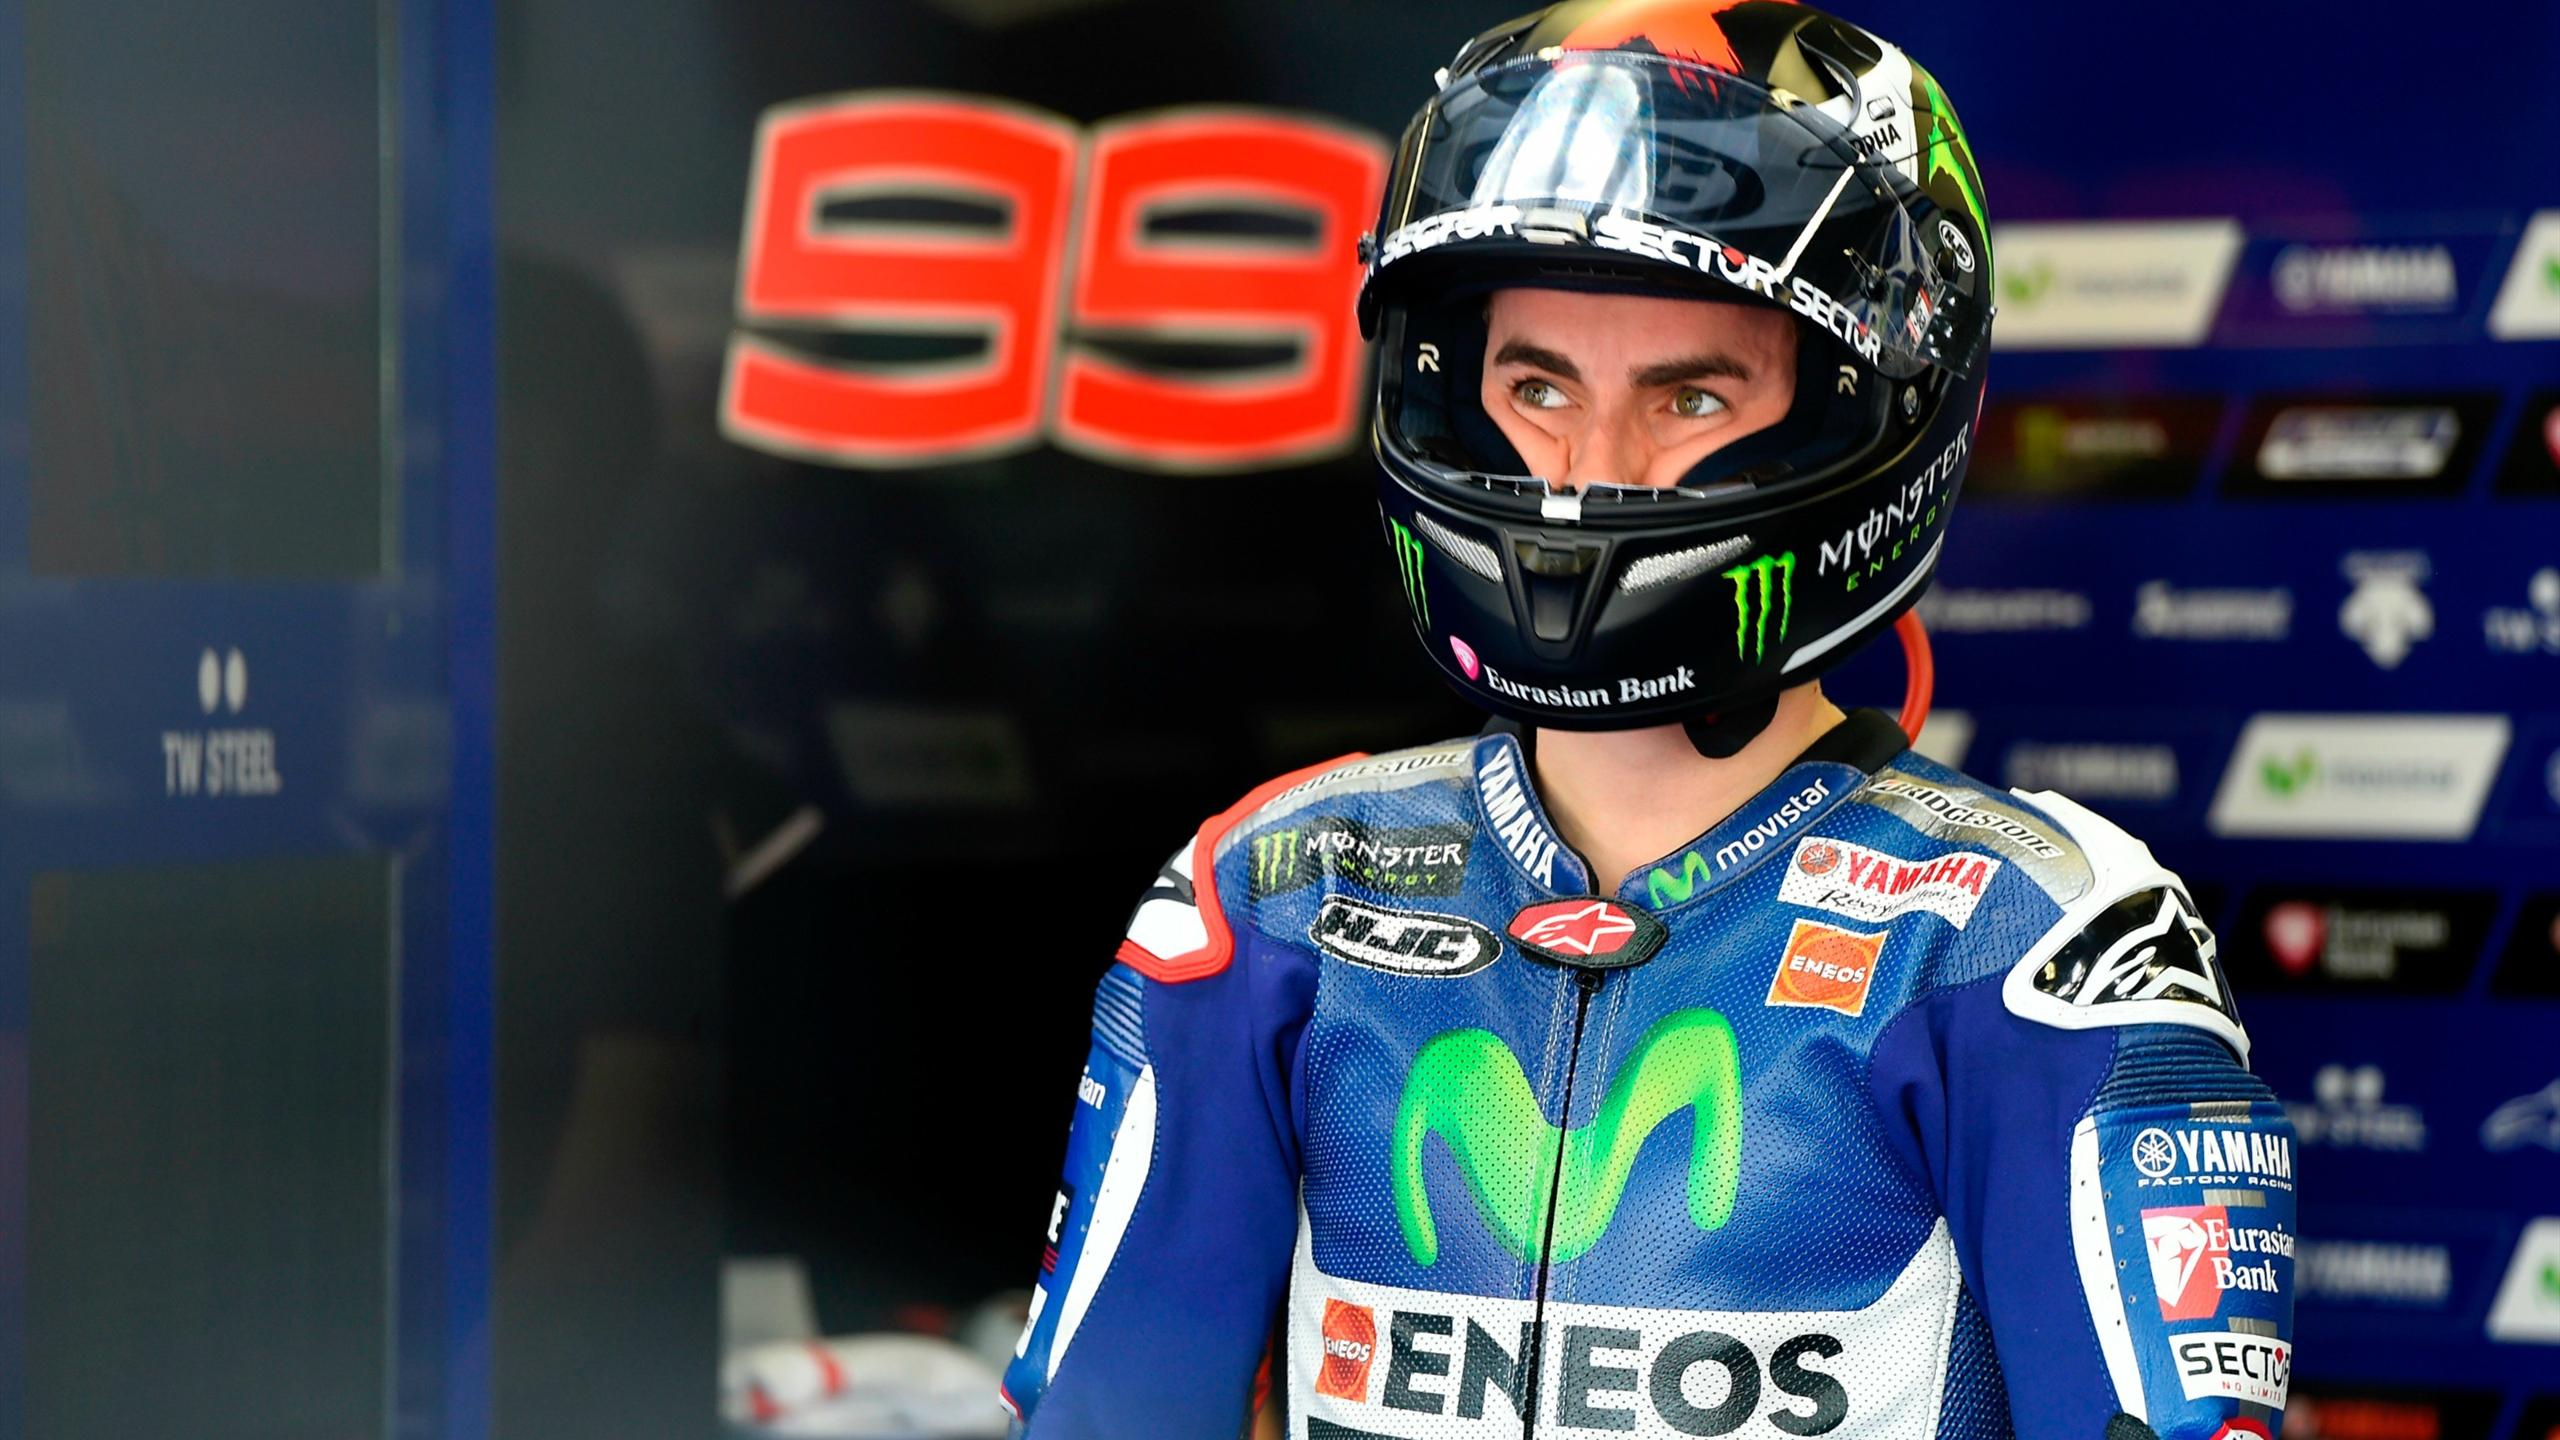 Jorge Lorenzo (Yamaha Factory) - GP of Japan 2015